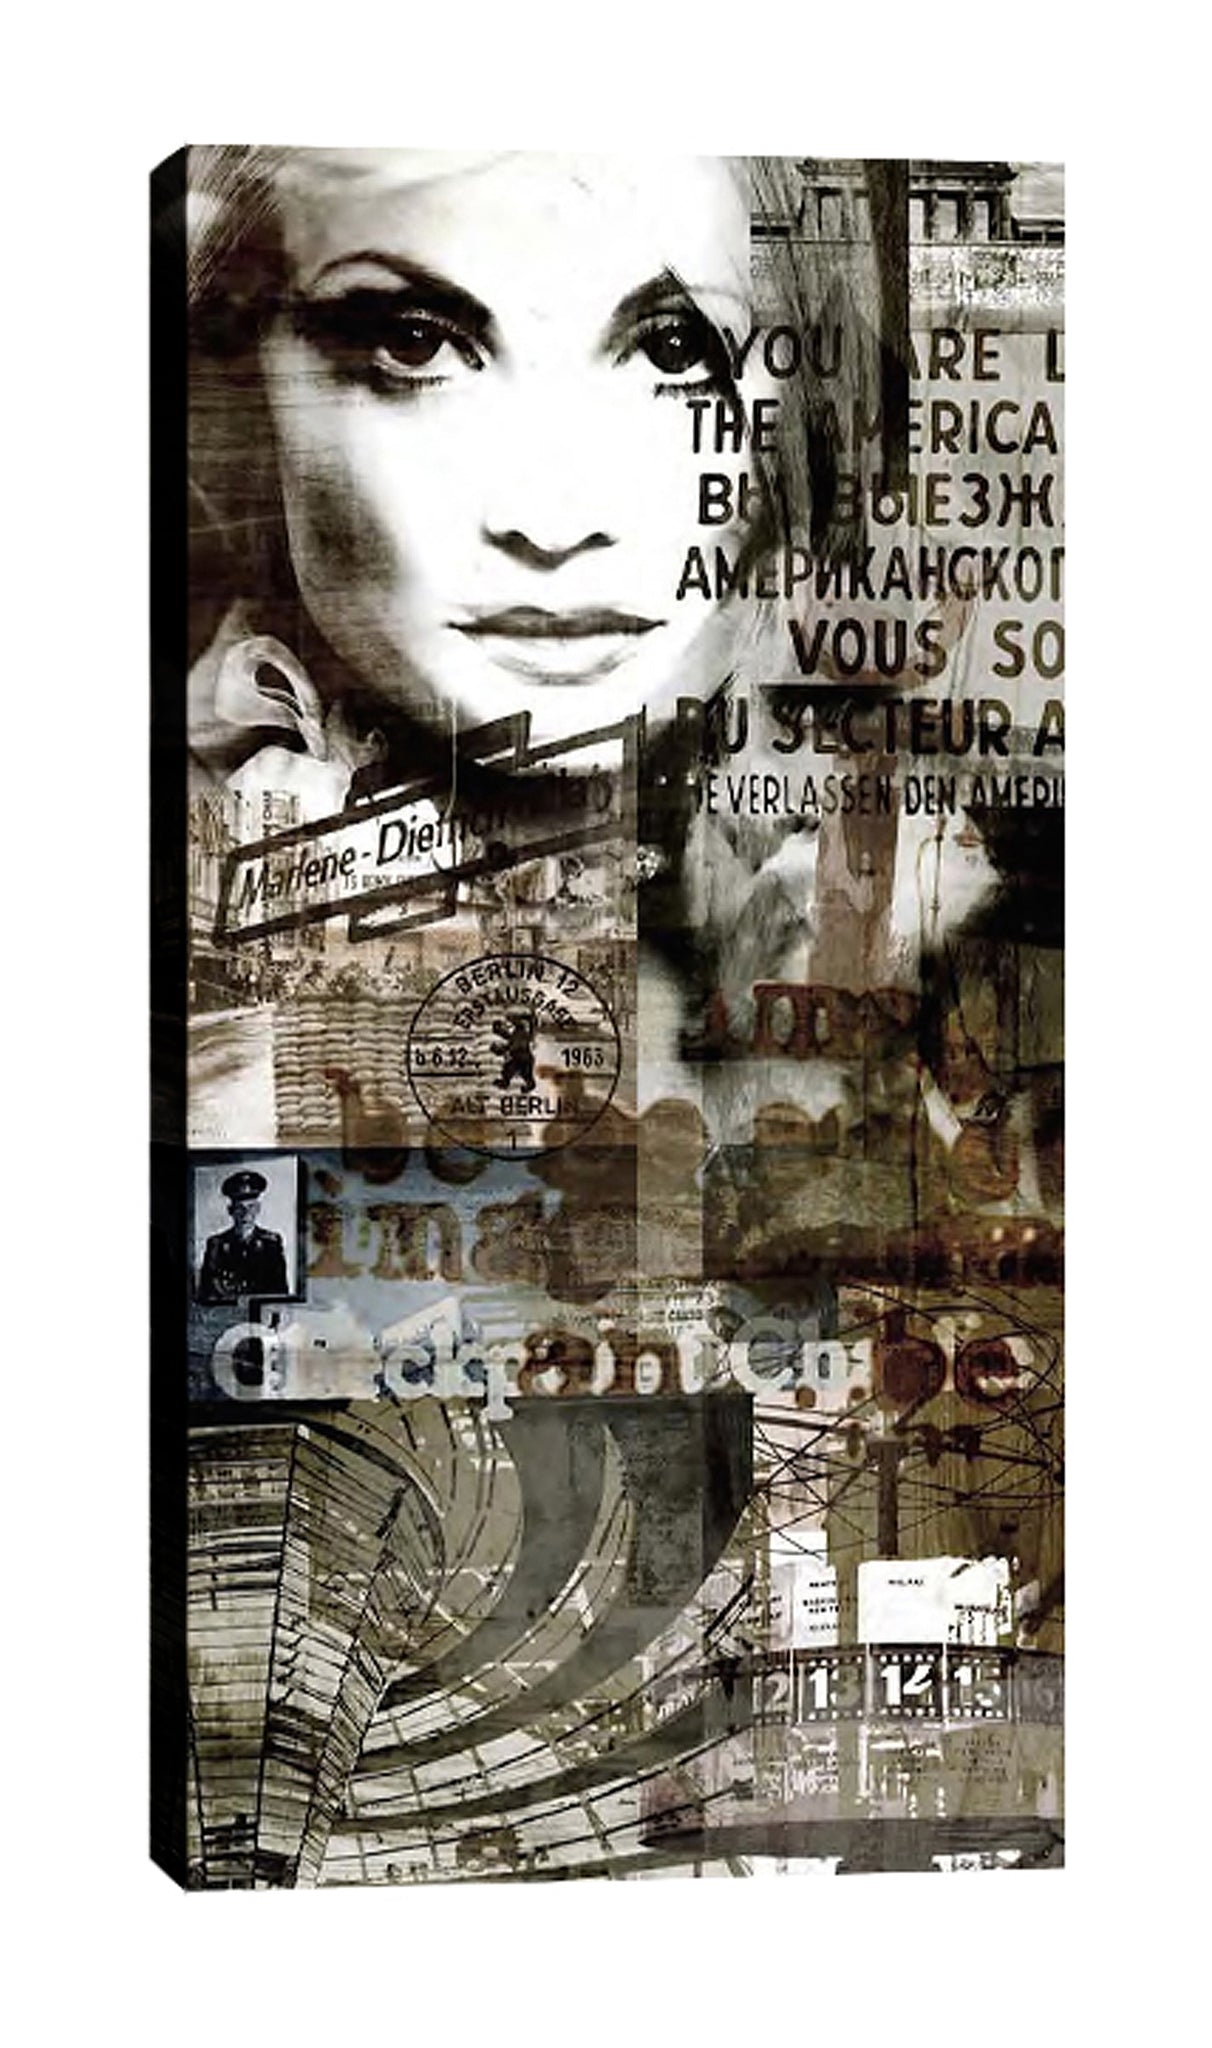 Sven-Pfrommer,Modern & Contemporary,Entertainment,Buildings & Cityscapes,People,woman,women,fashion,words and phrases,building,stamps,Charcoal Gray,Black,Blue,White,Gray